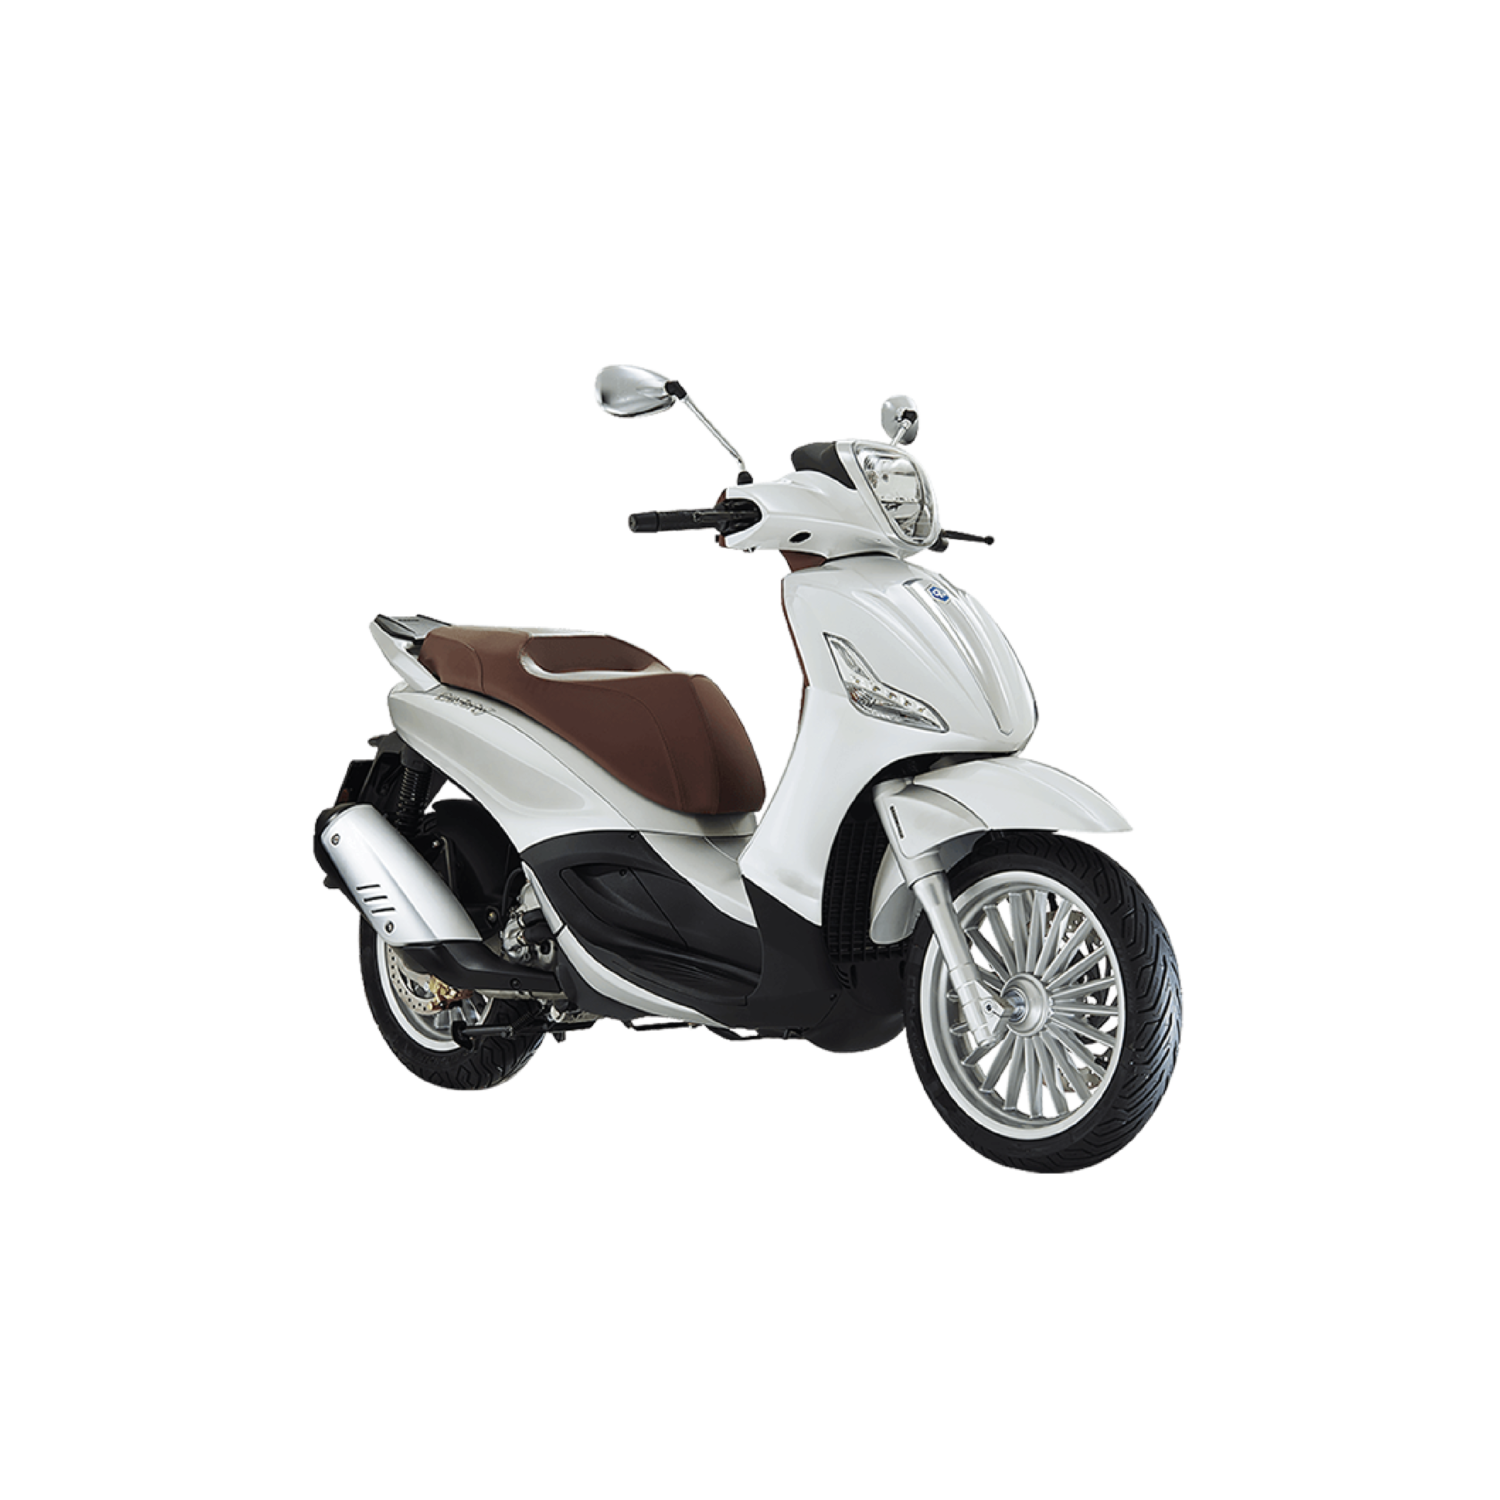 Piaggio Beverly 300 IE ABS